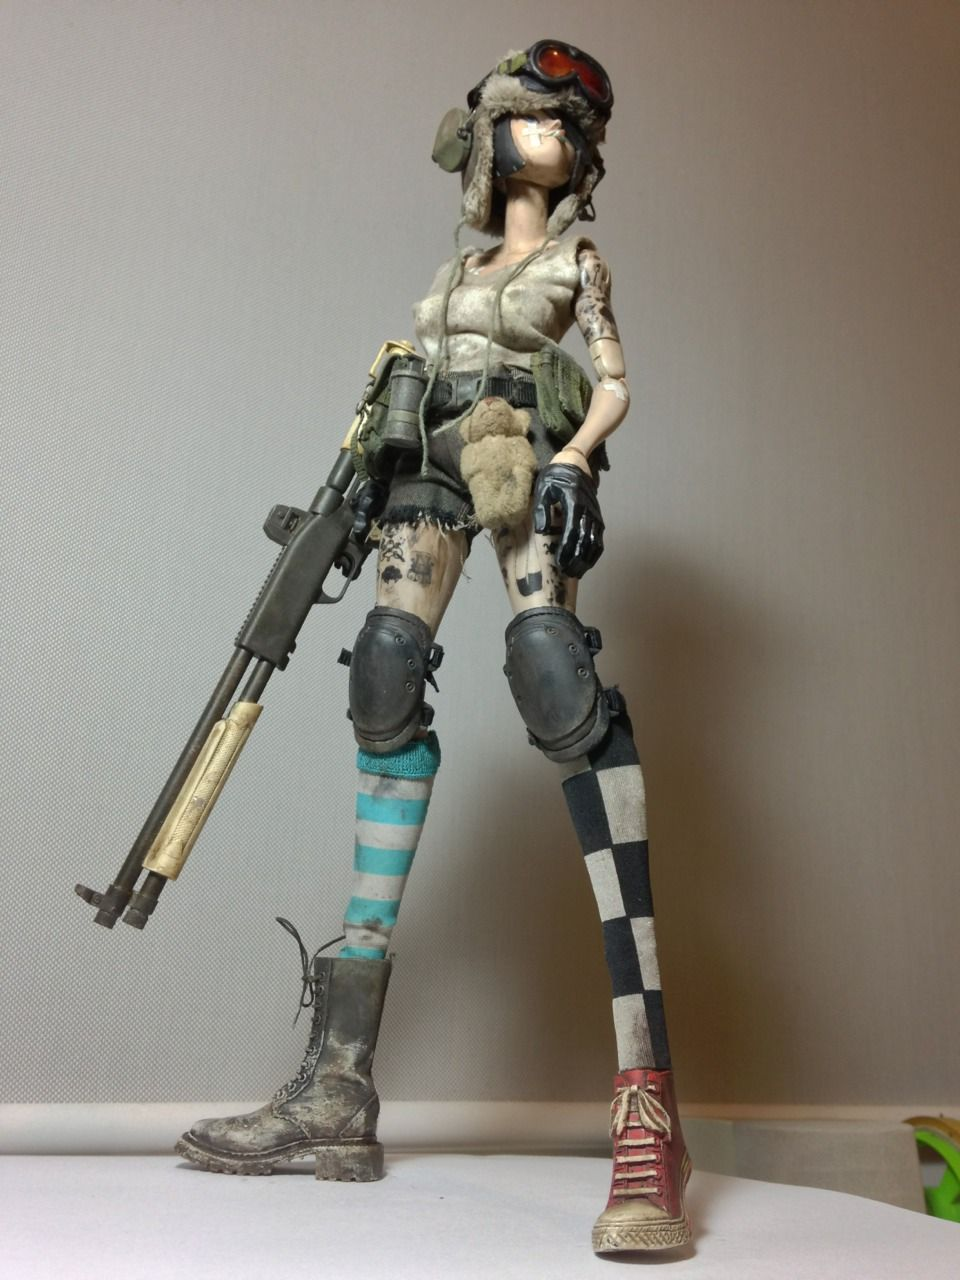 Girl Toy Figures : Toys tank girl mcbess ashley wood a threea kitbash